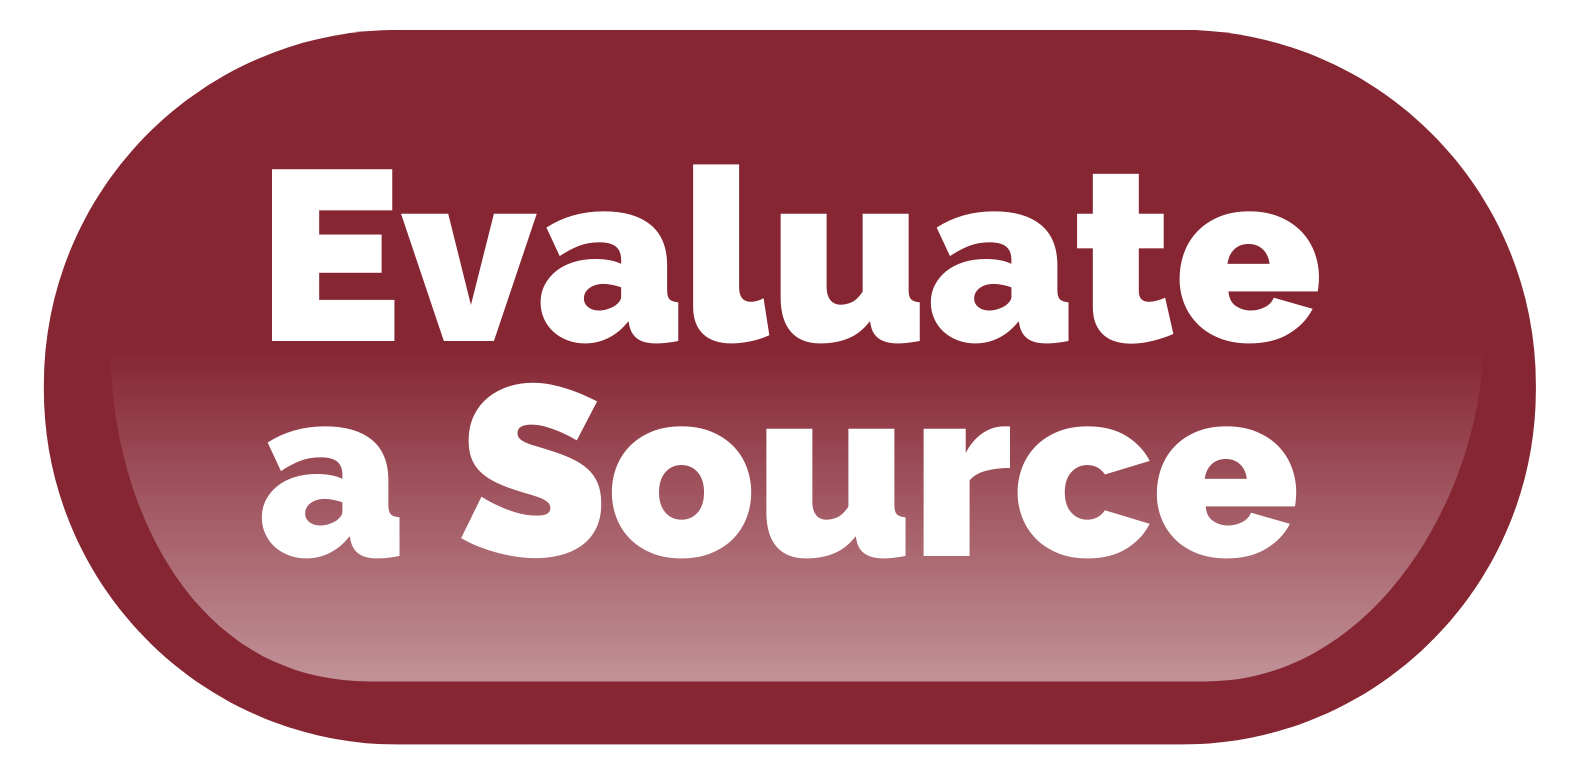 Evaluate a Source